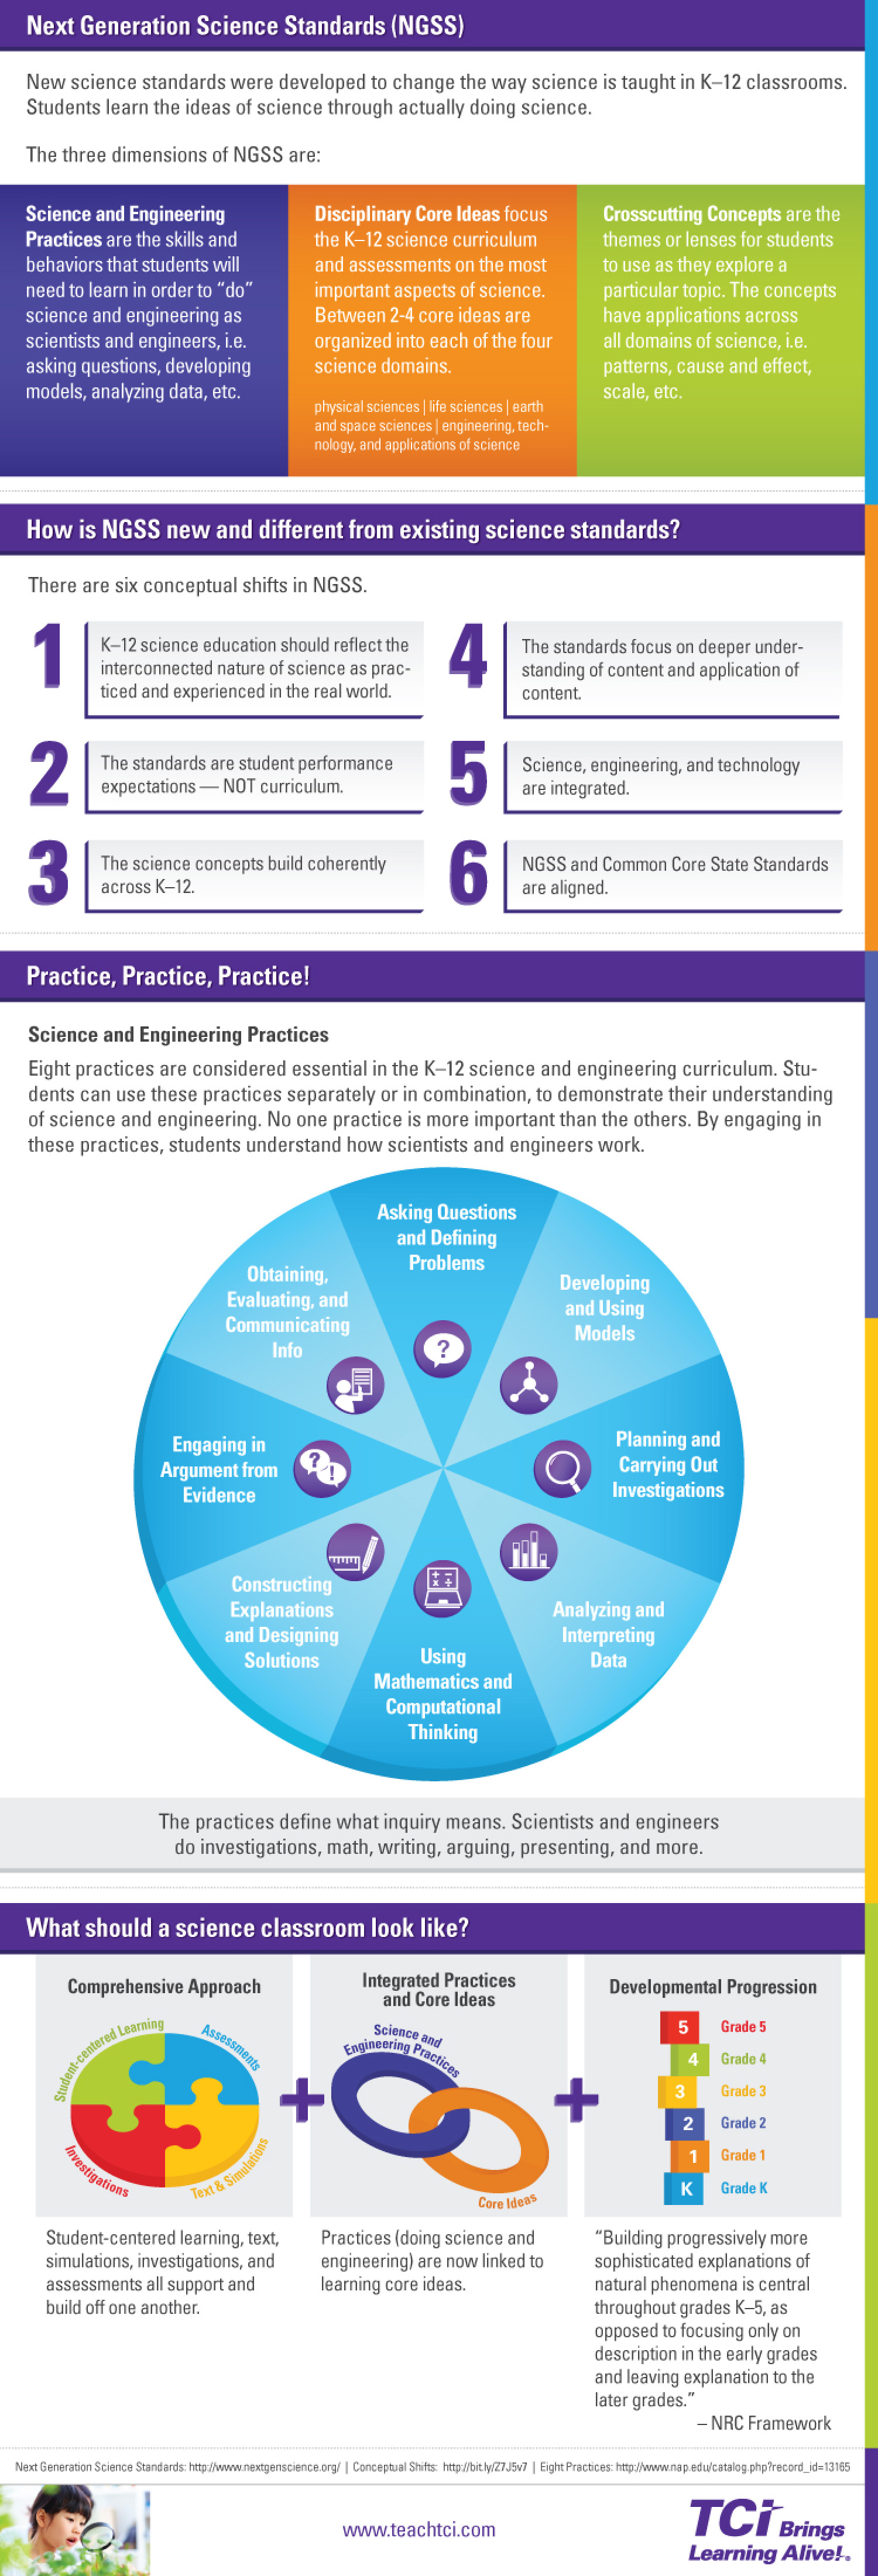 Understanding the Next Generation Science Standards | TCI Infographic